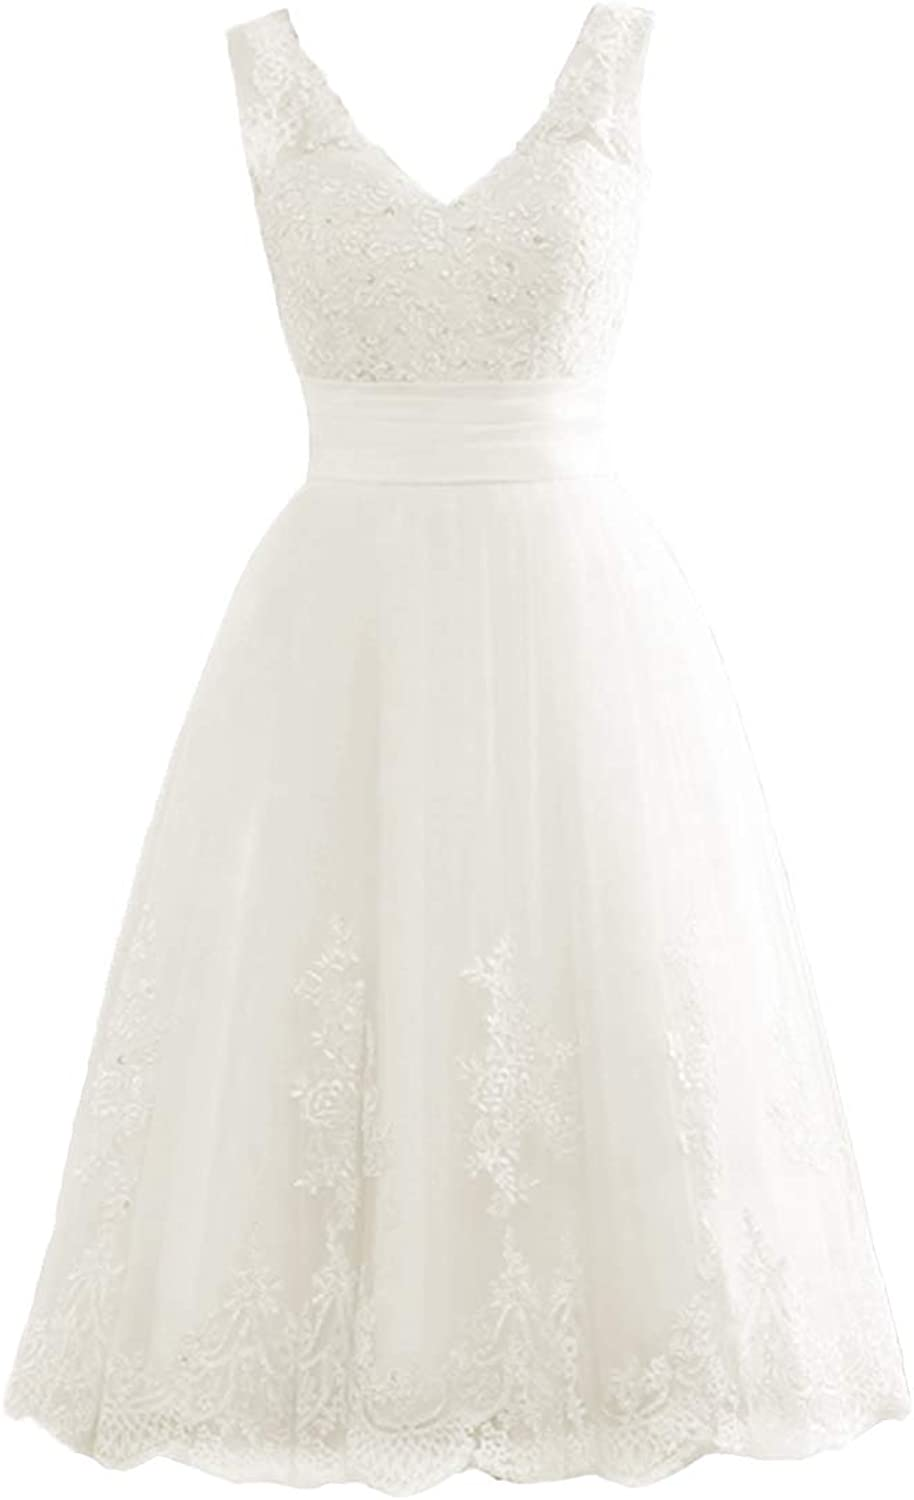 Cdress Short Wedding Dresses Lace Appliques Bridal Dress Beads Tulle VNeck Gowns for Bride